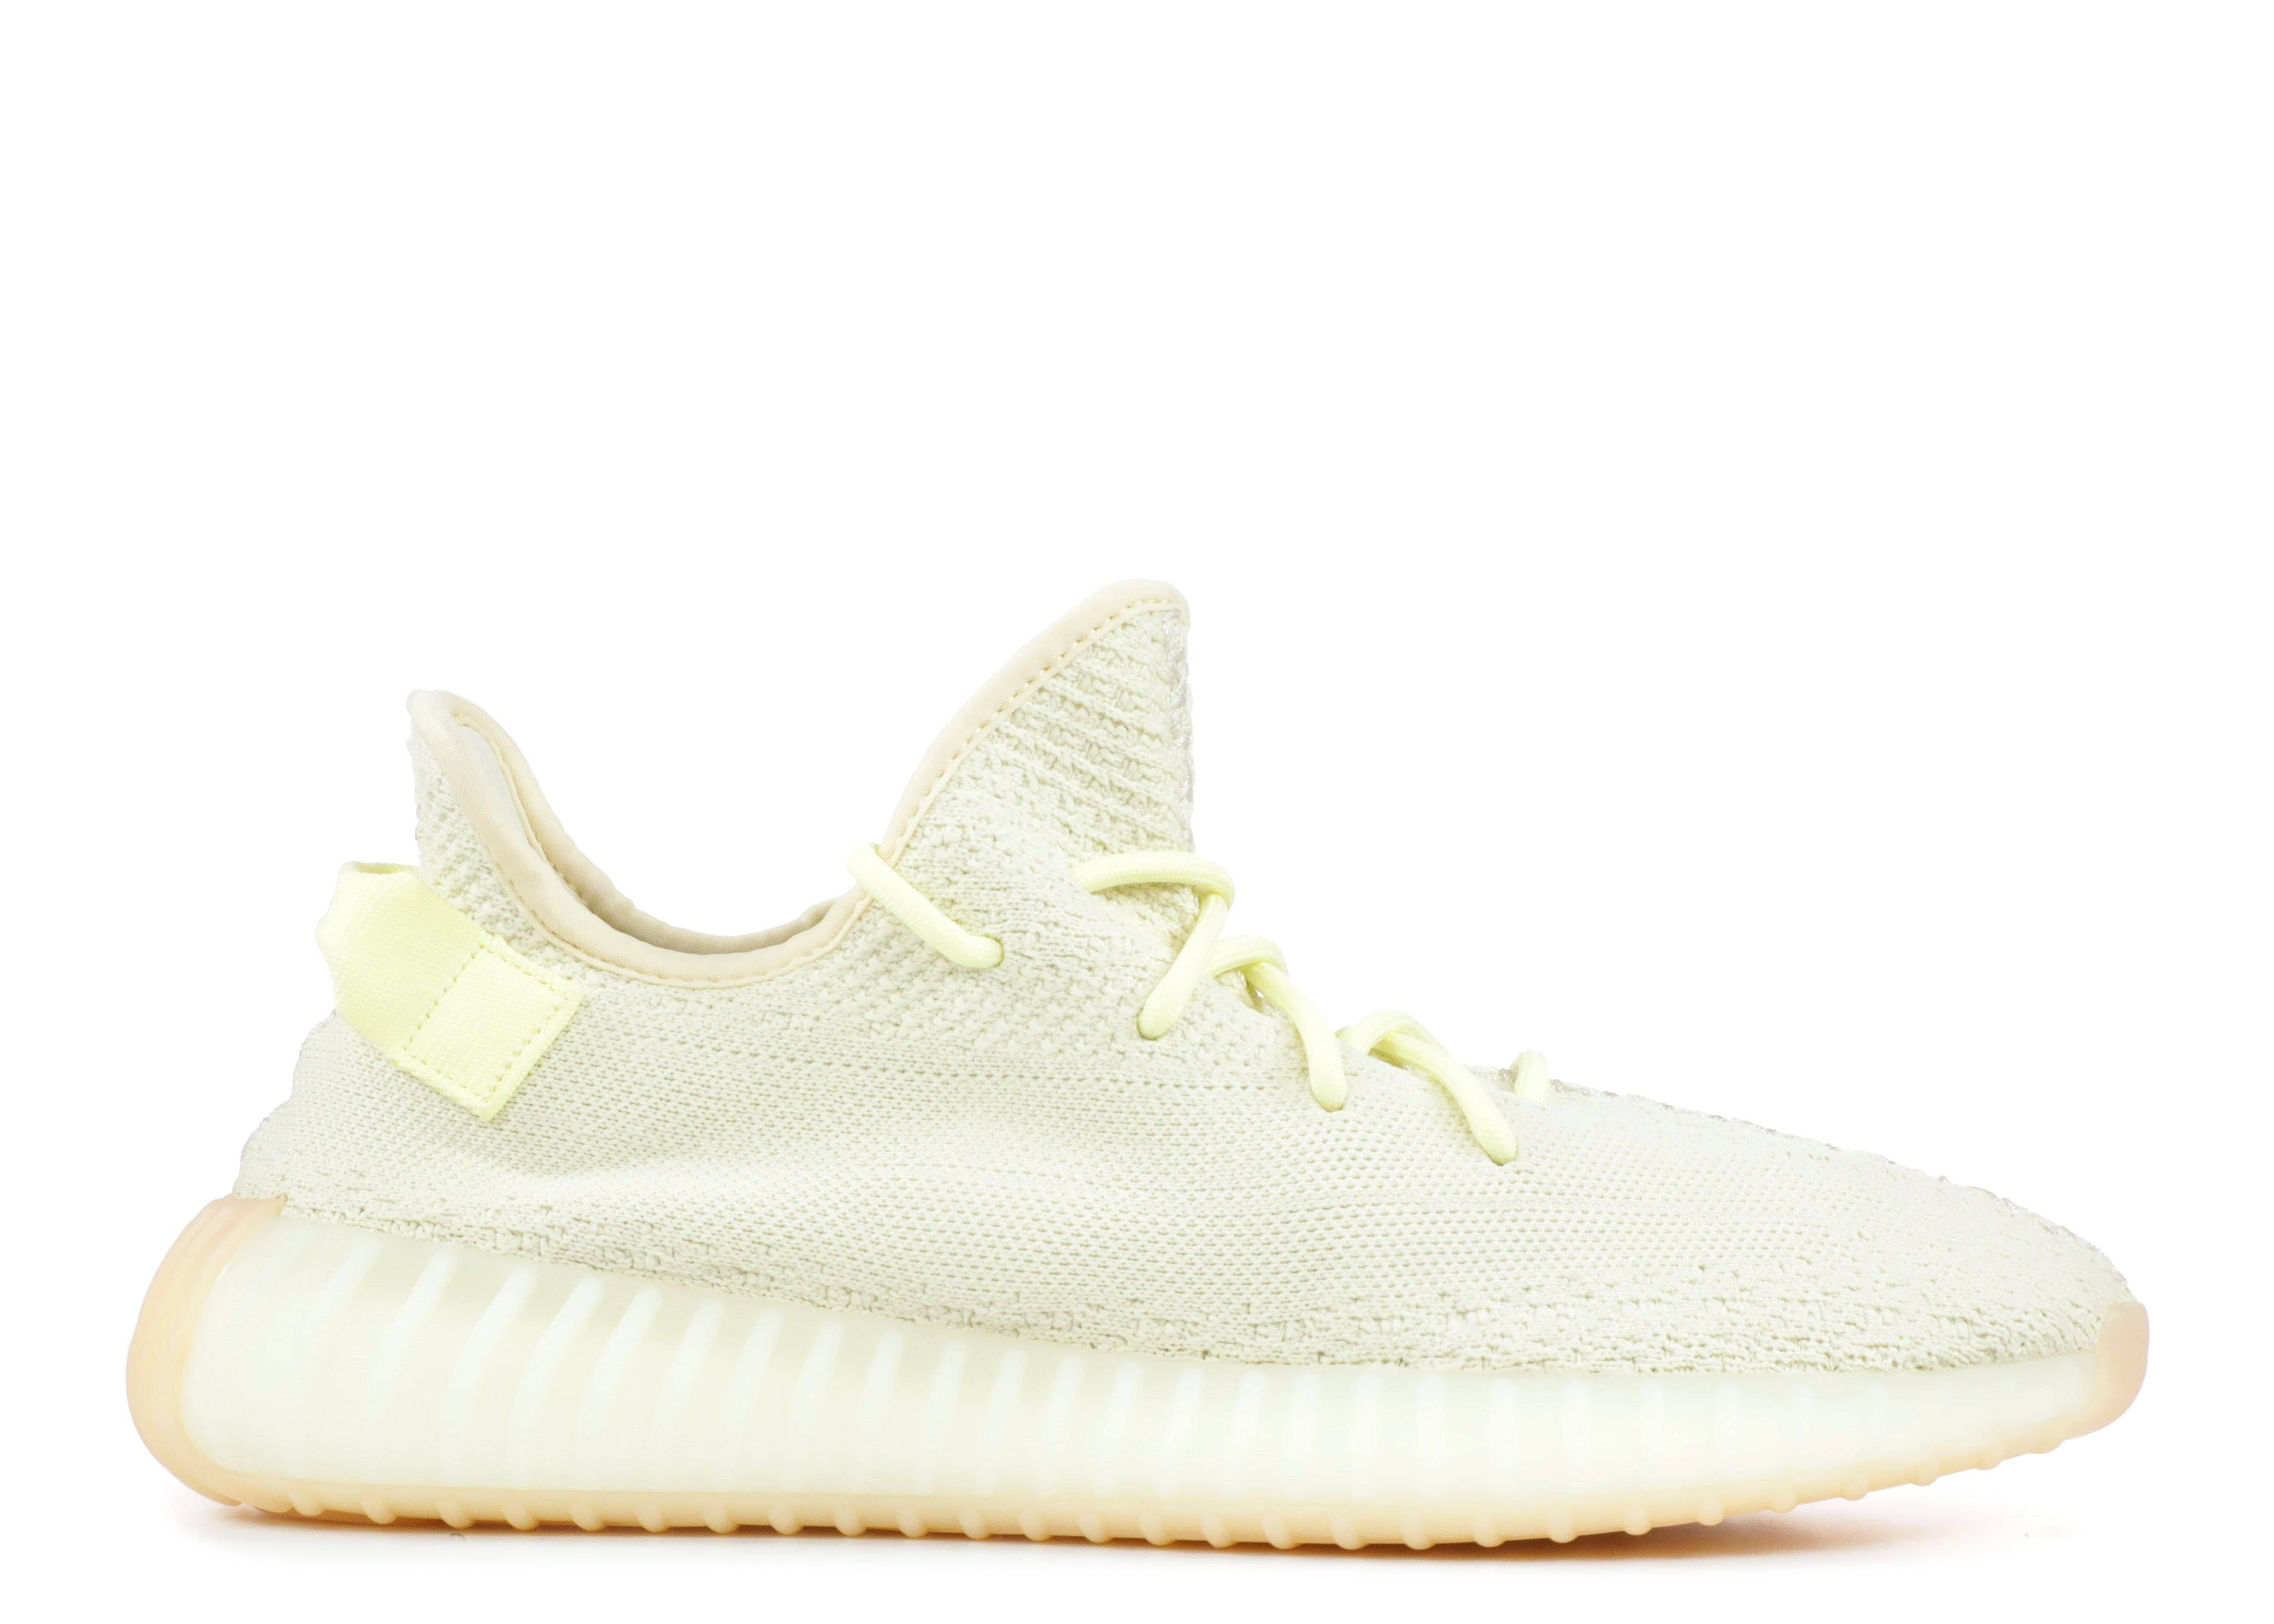 buy good differently classic styles yeezy boost 350 v2